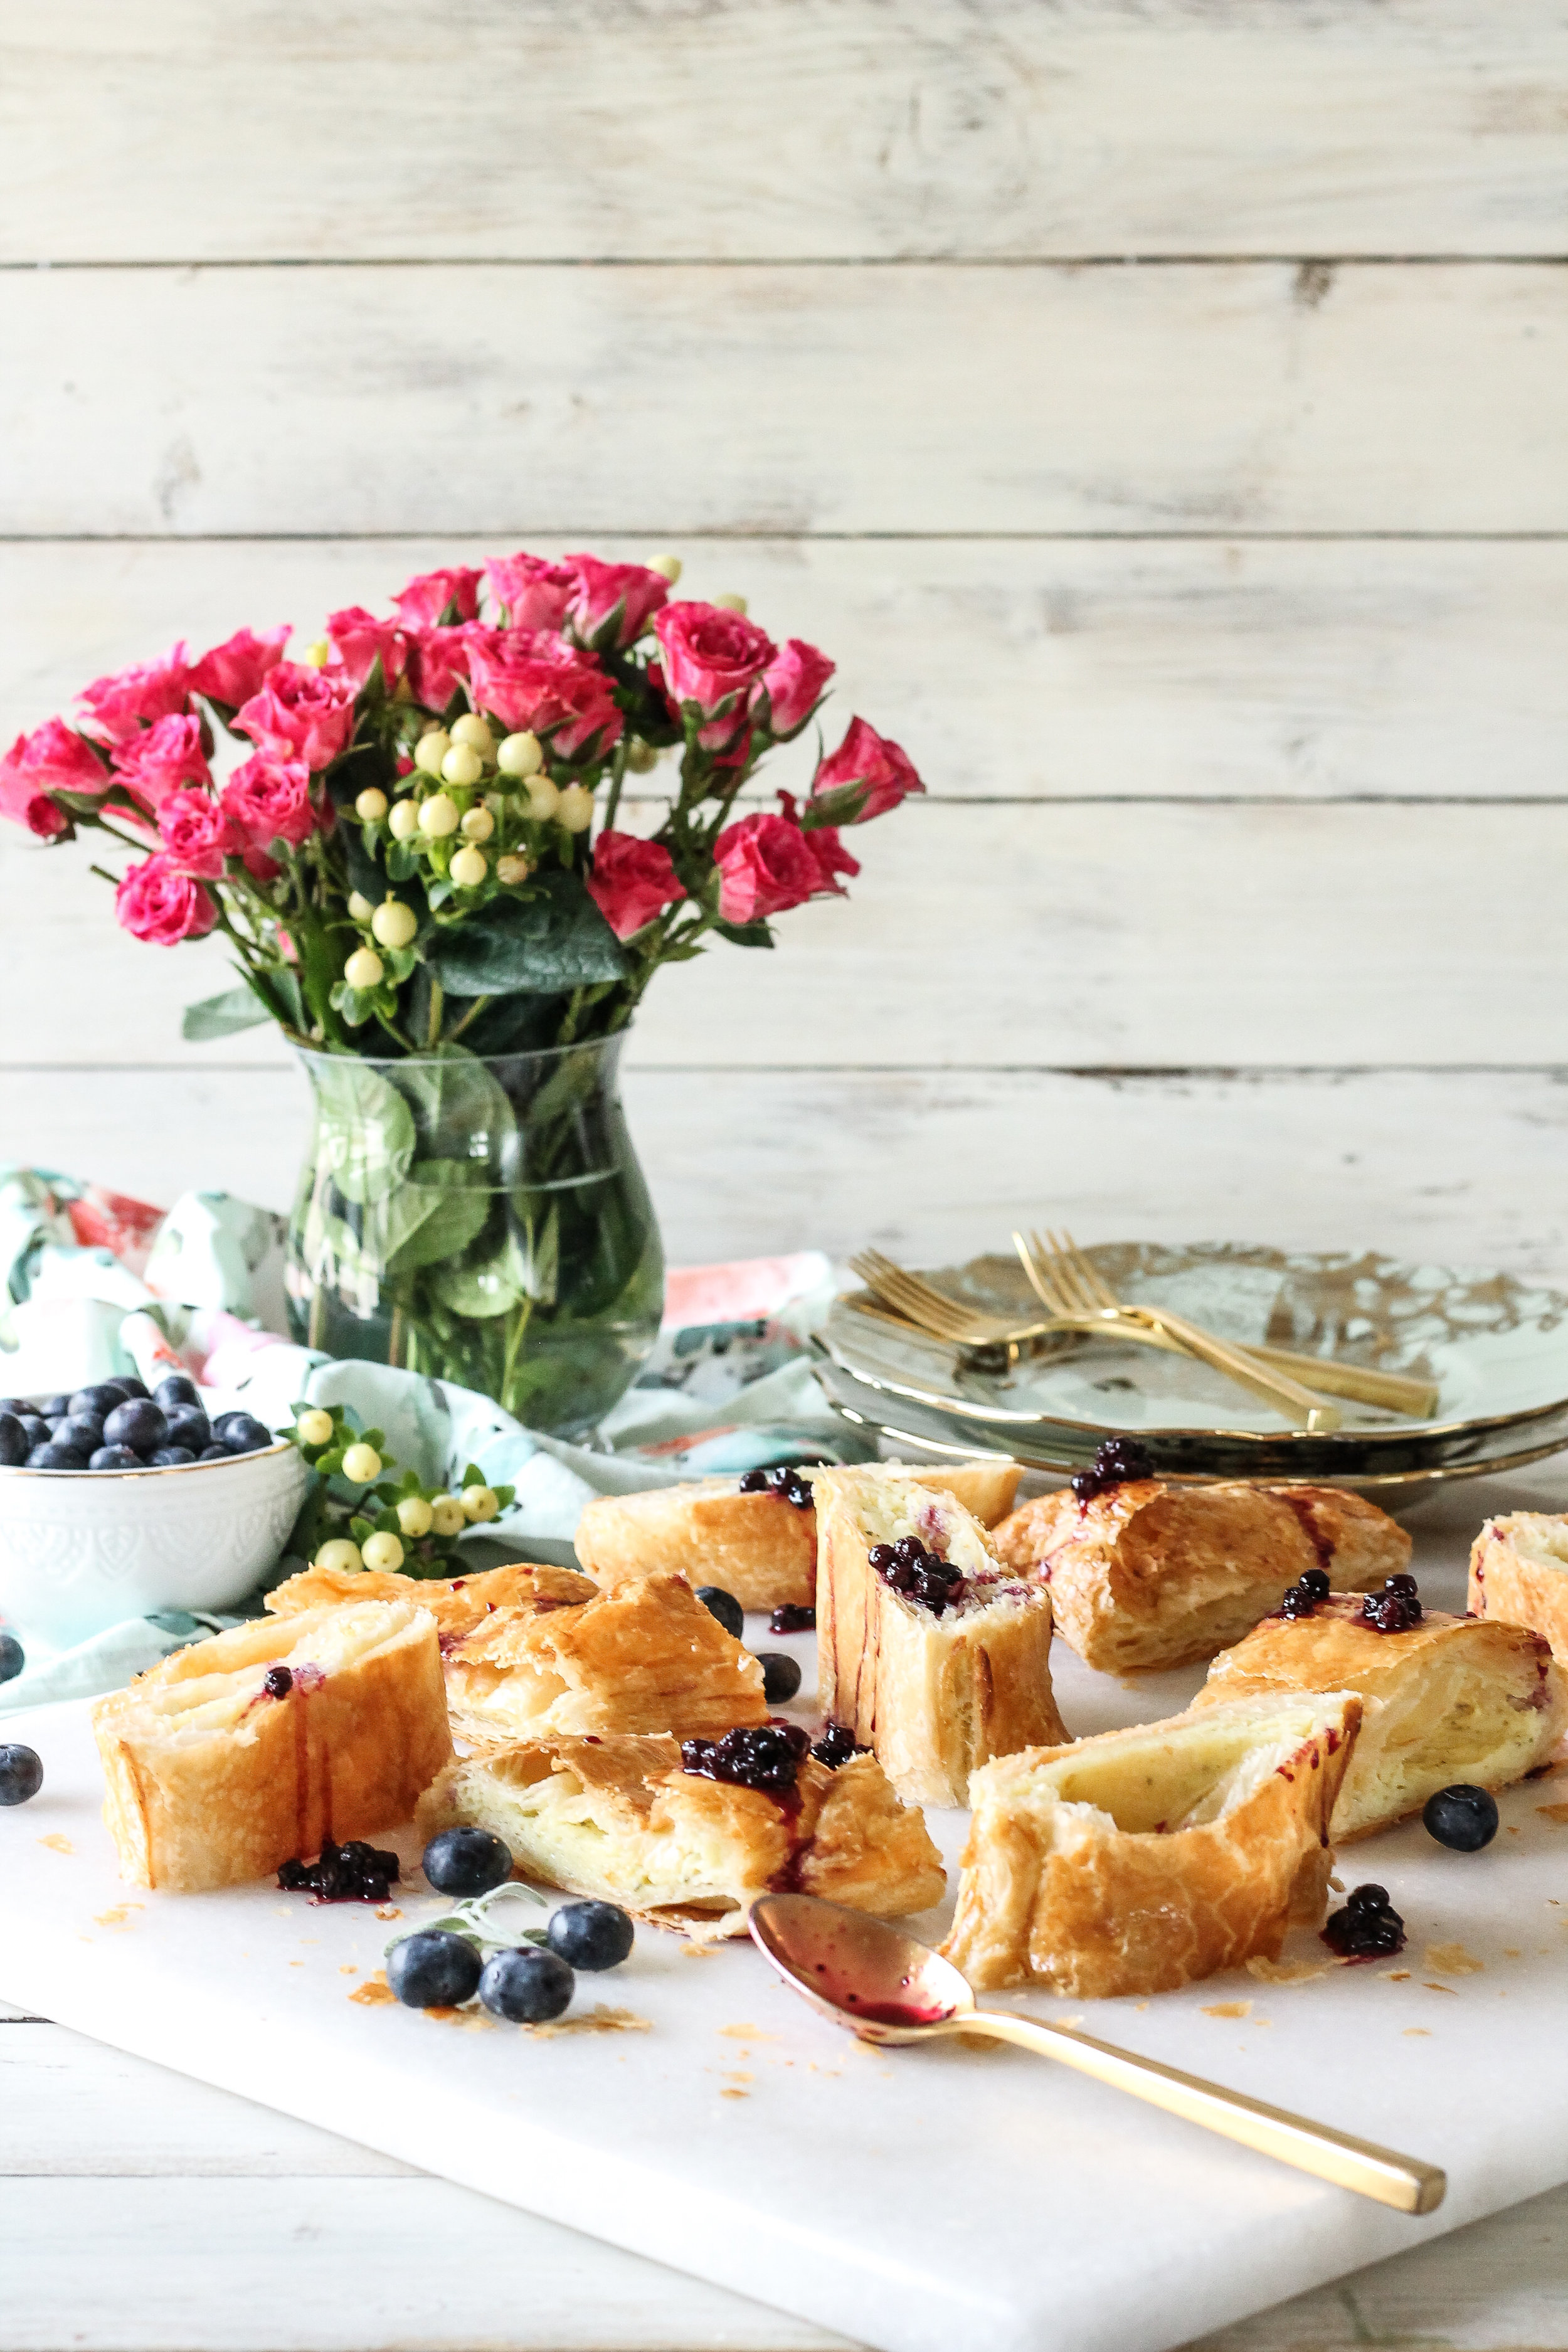 This delicious and simple Easter Bread is sure to be the star of any celebration!  With a delicate vanilla bean and sage mascarpone filling and a wild blueberry sauce, it has all the flavors of spring in every bite!  Find the recipe on www.pedanticfoodie.com!